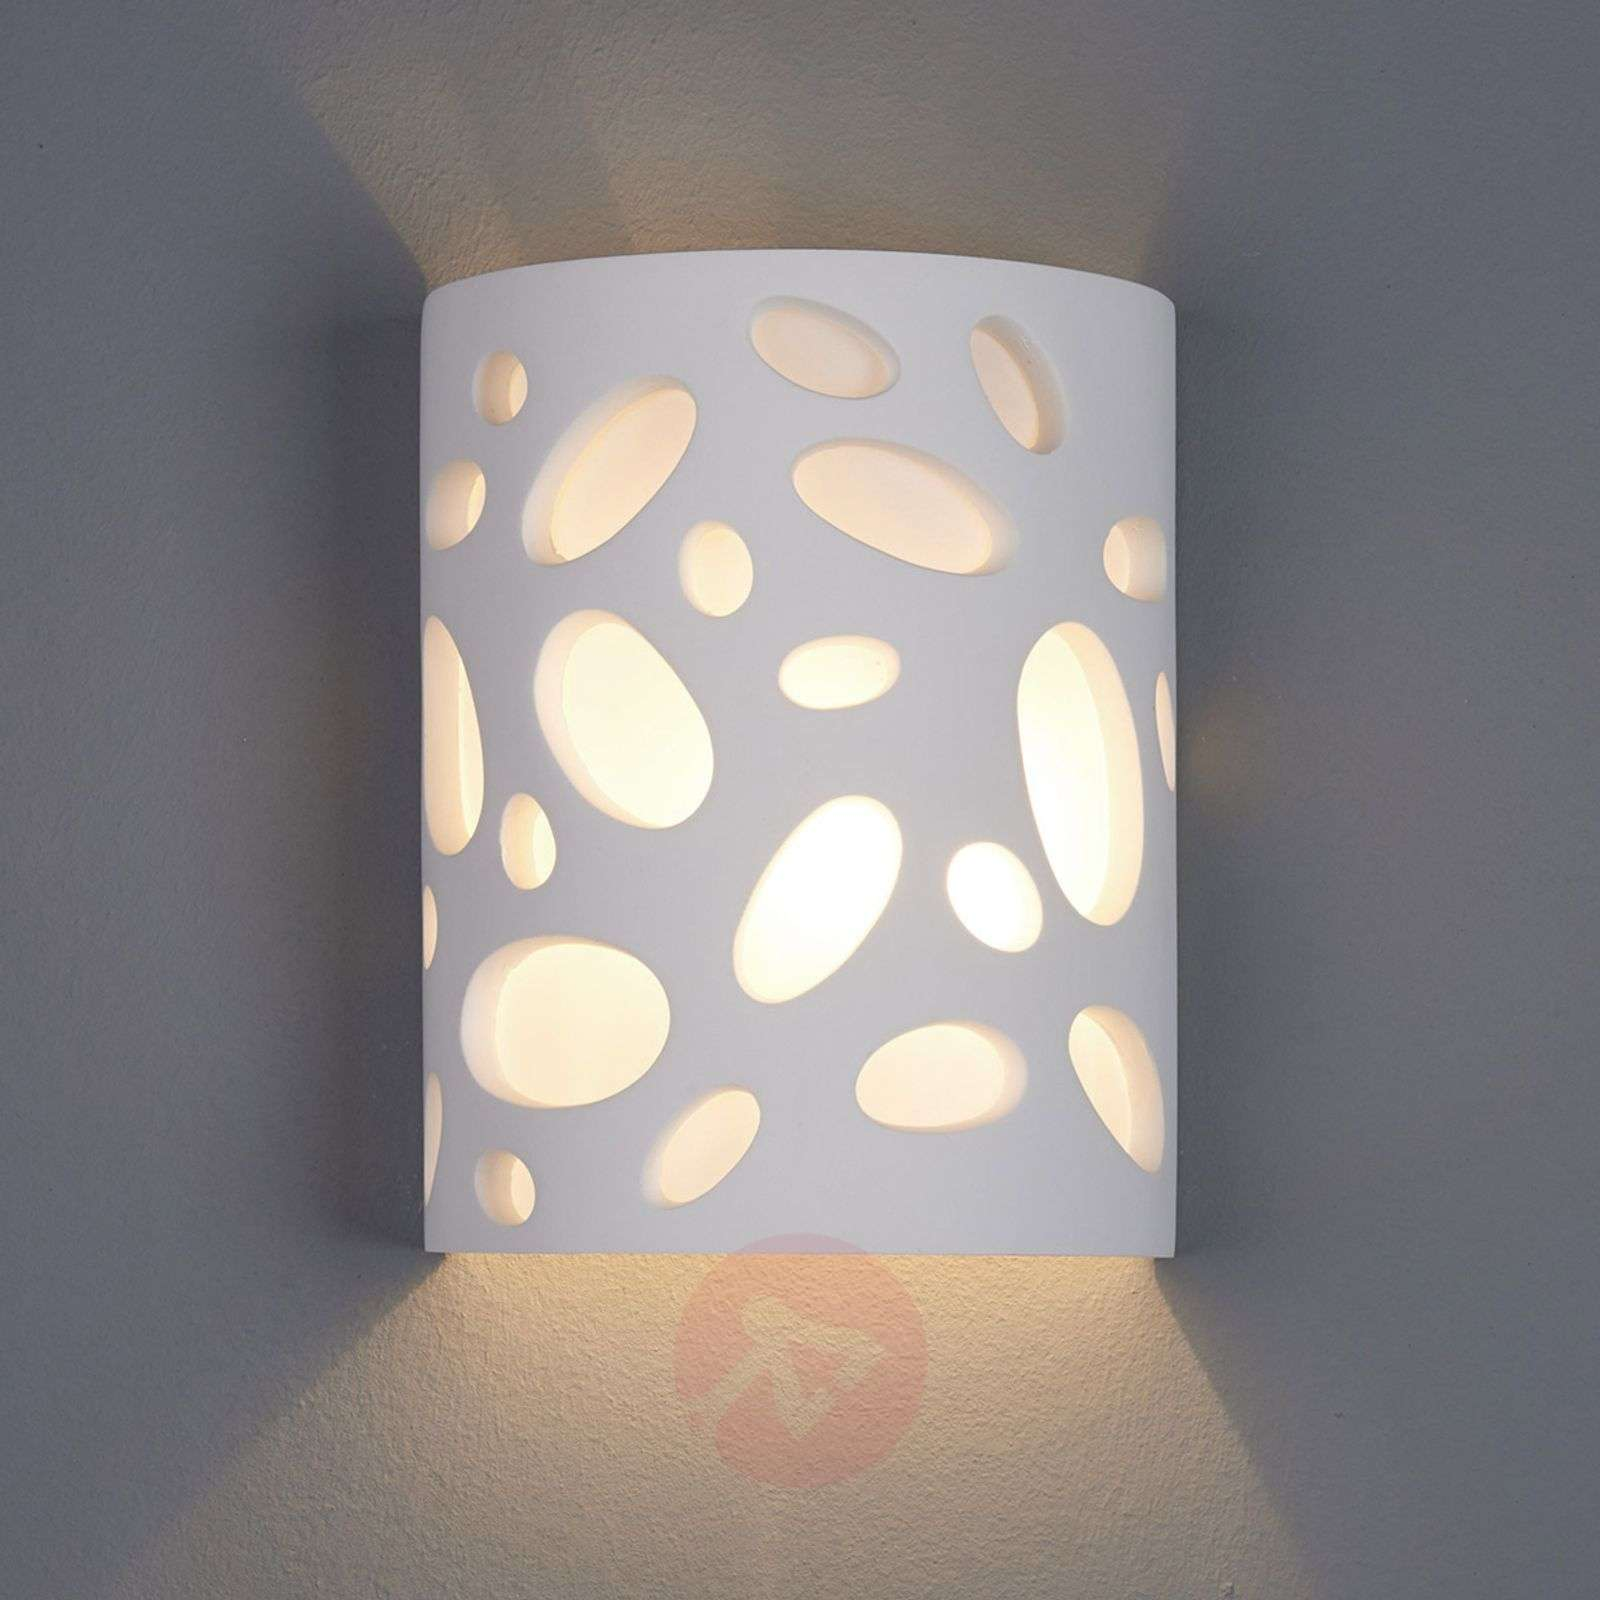 Hanni Wall Light Decorative Plaster-9613026-01